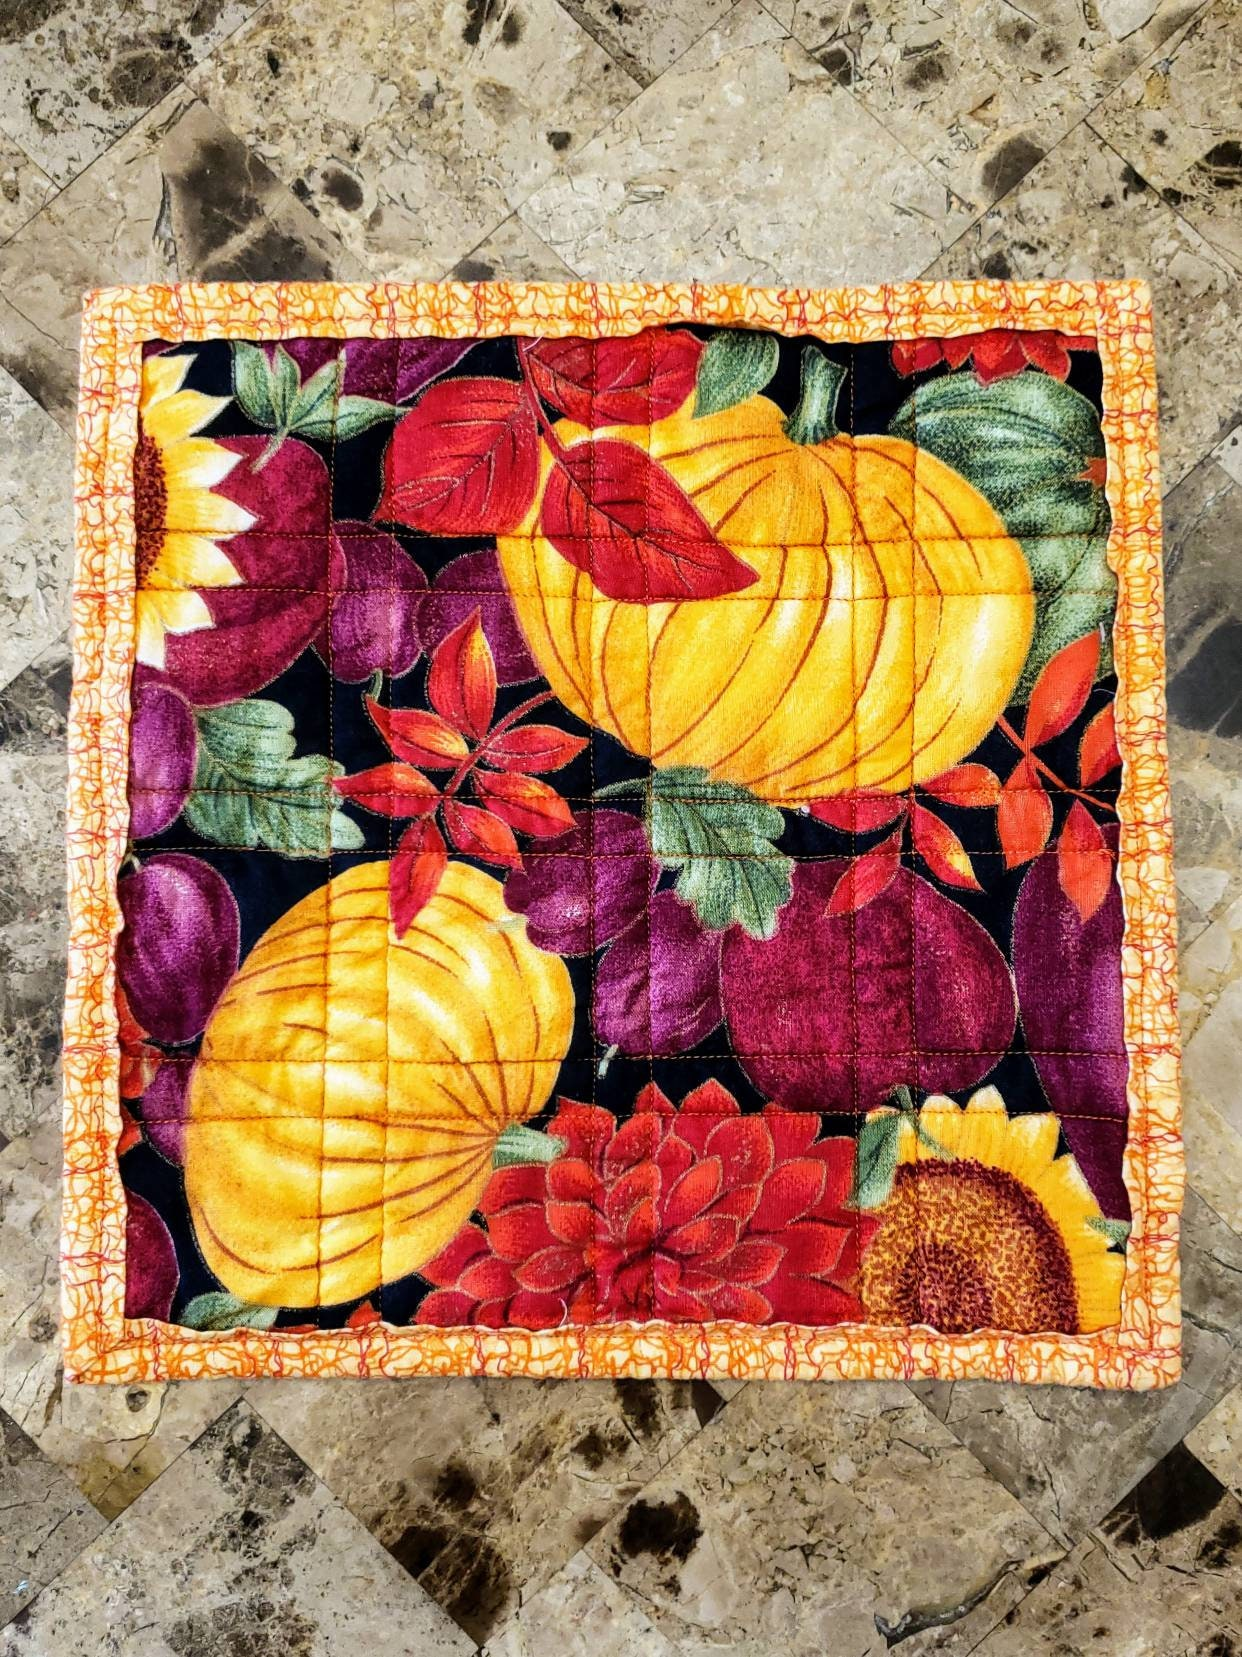 Halloween Thanksgiving 11 Sq Quilted Pot Holder Hot Pad Mug Rug Snack Mat Candle Mat Placemat Coaster Shabby Chic Boho Chic Kitchen Decor